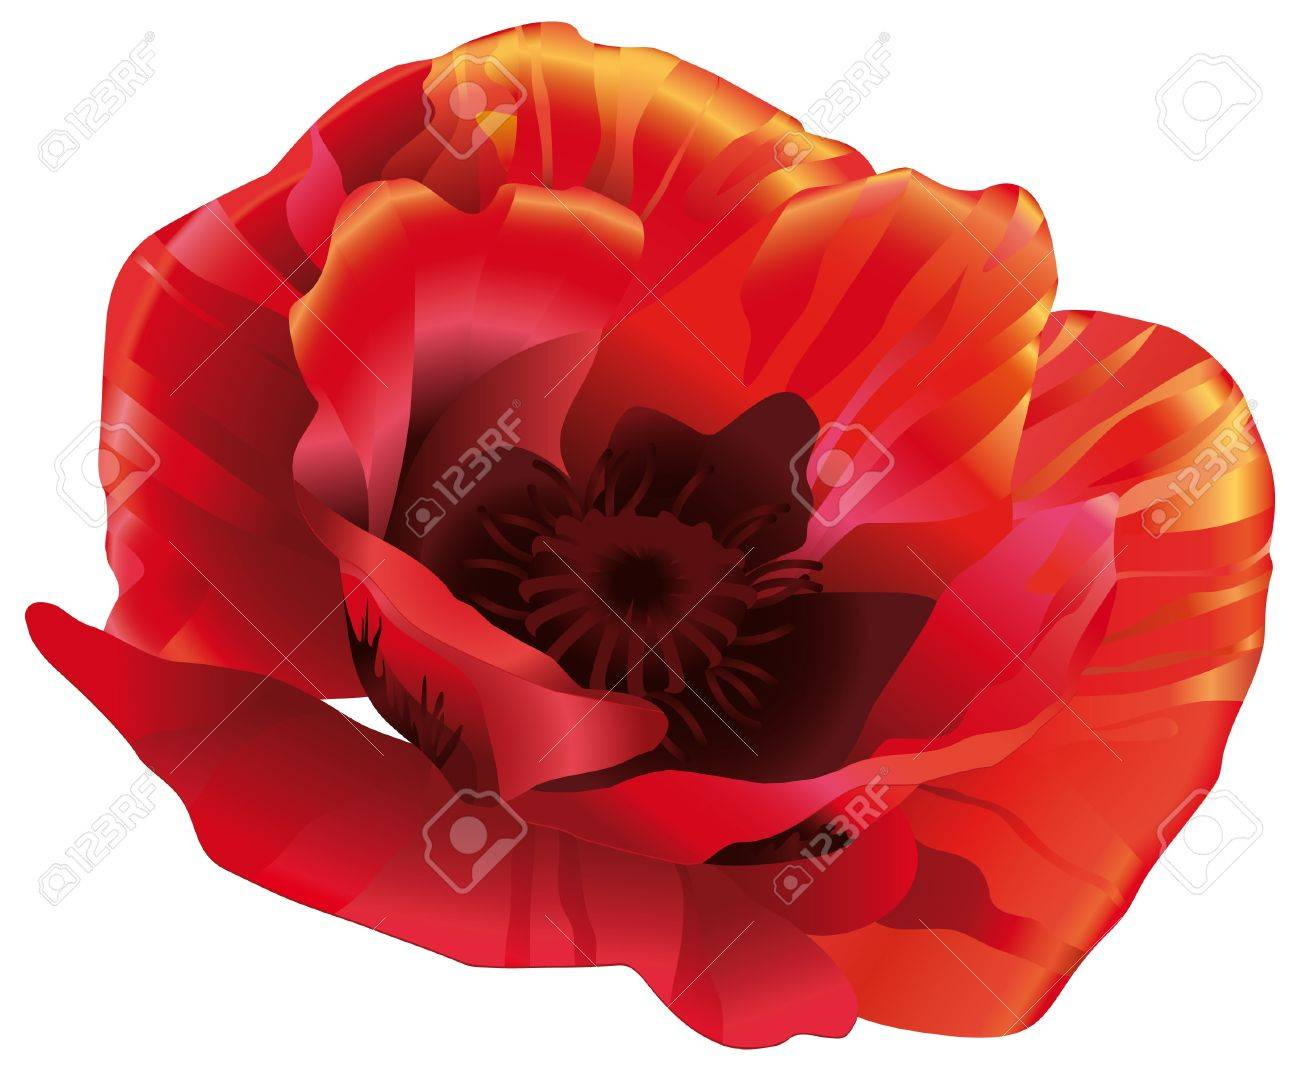 flower head of red poppies in a realistic style royalty free